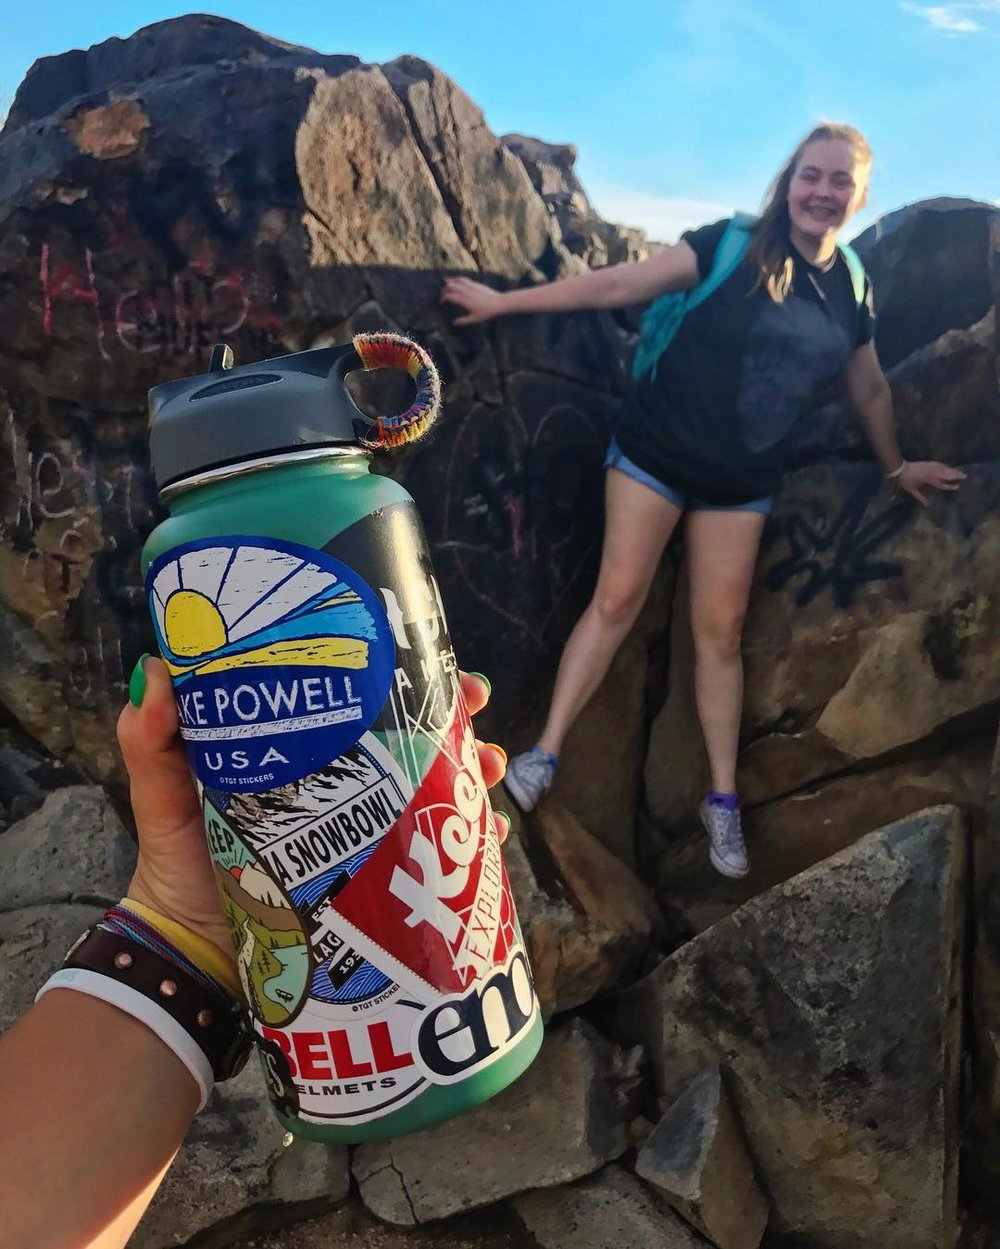 @haileh and her pals climbed to new heights, and took our iconic sticker along with the journey